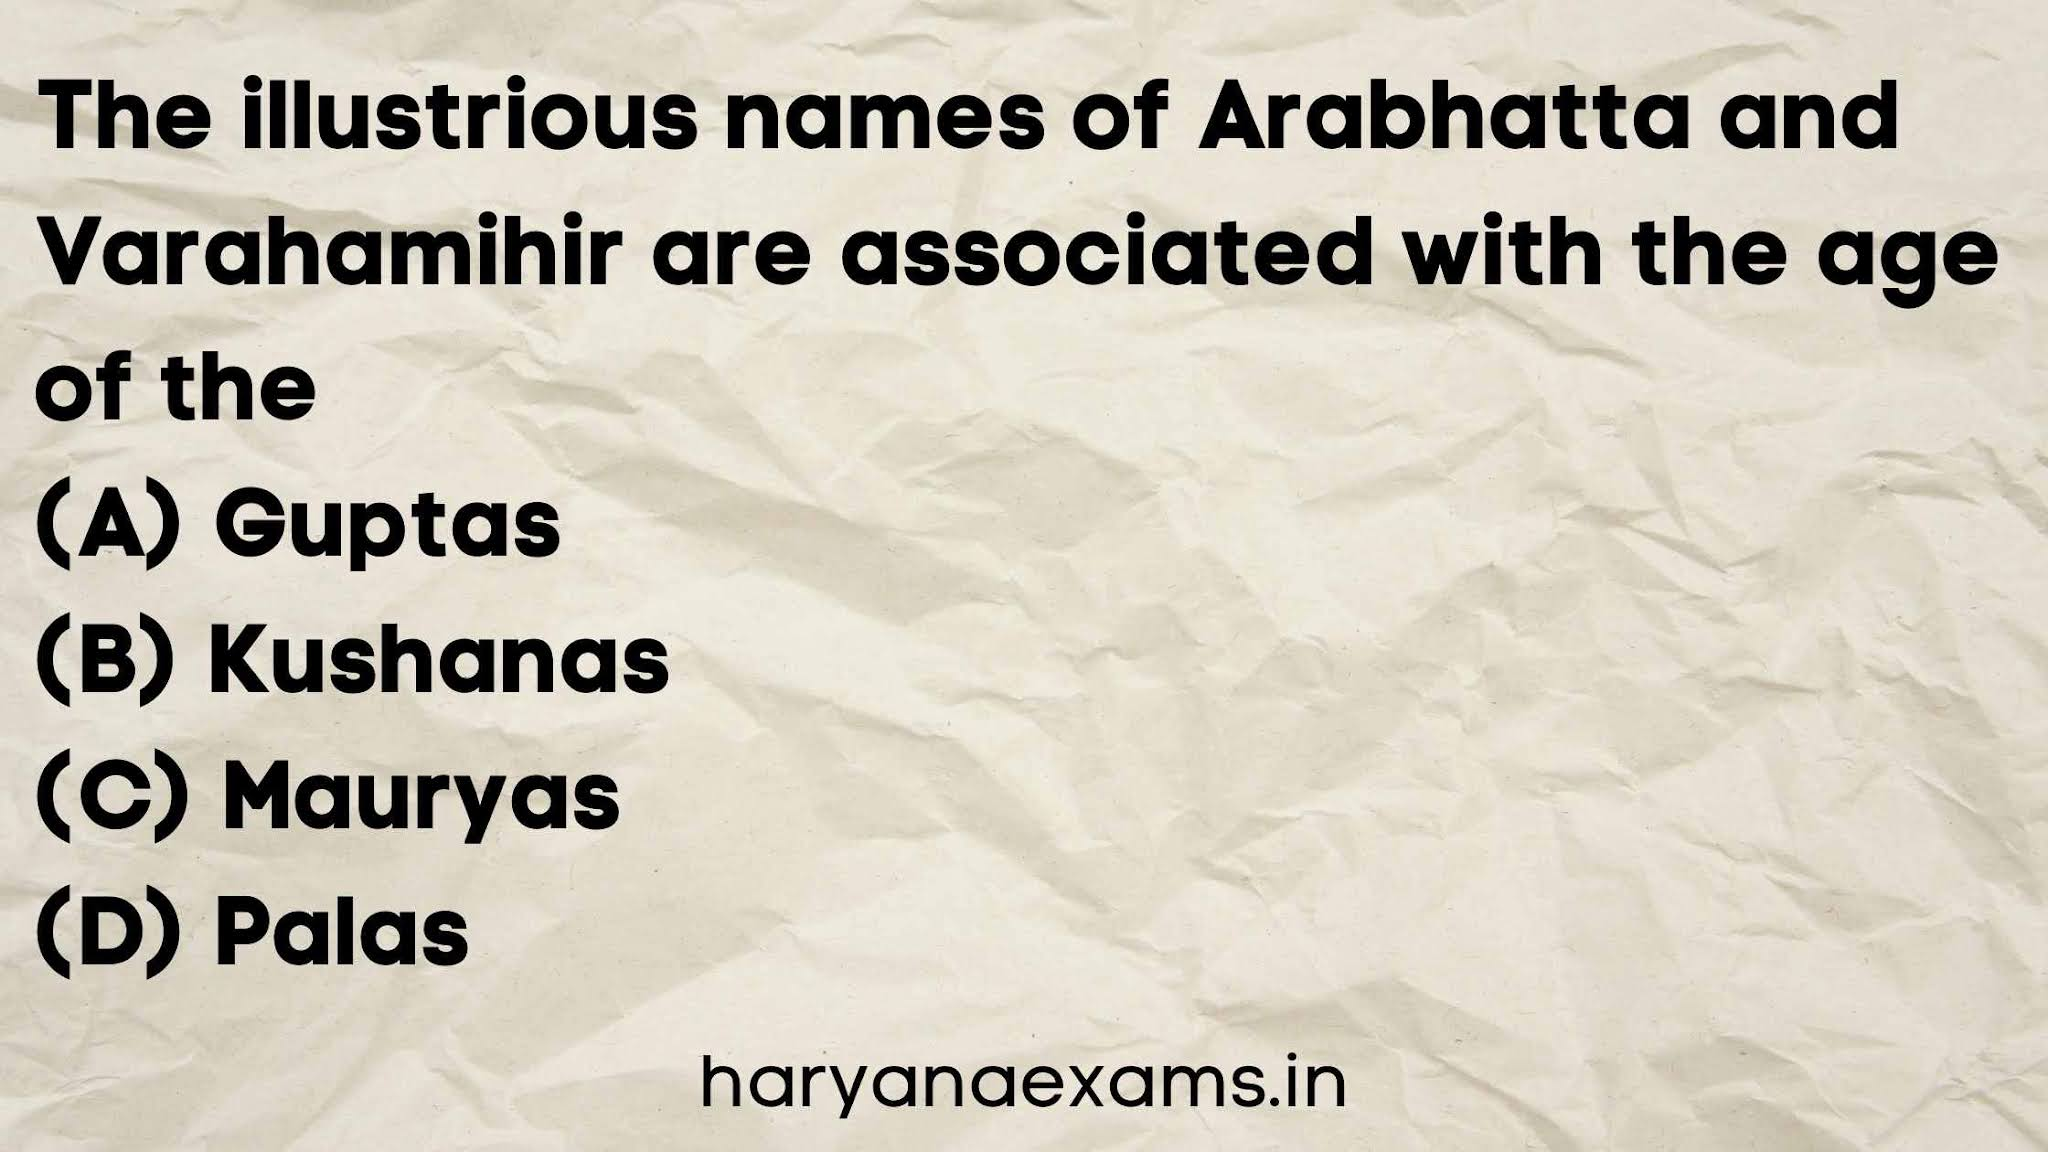 The illustrious names of Arabhatta and Varahamihir are associated with the age of the   (A) Guptas   (B) Kushanas   (C) Mauryas   (D) Palas